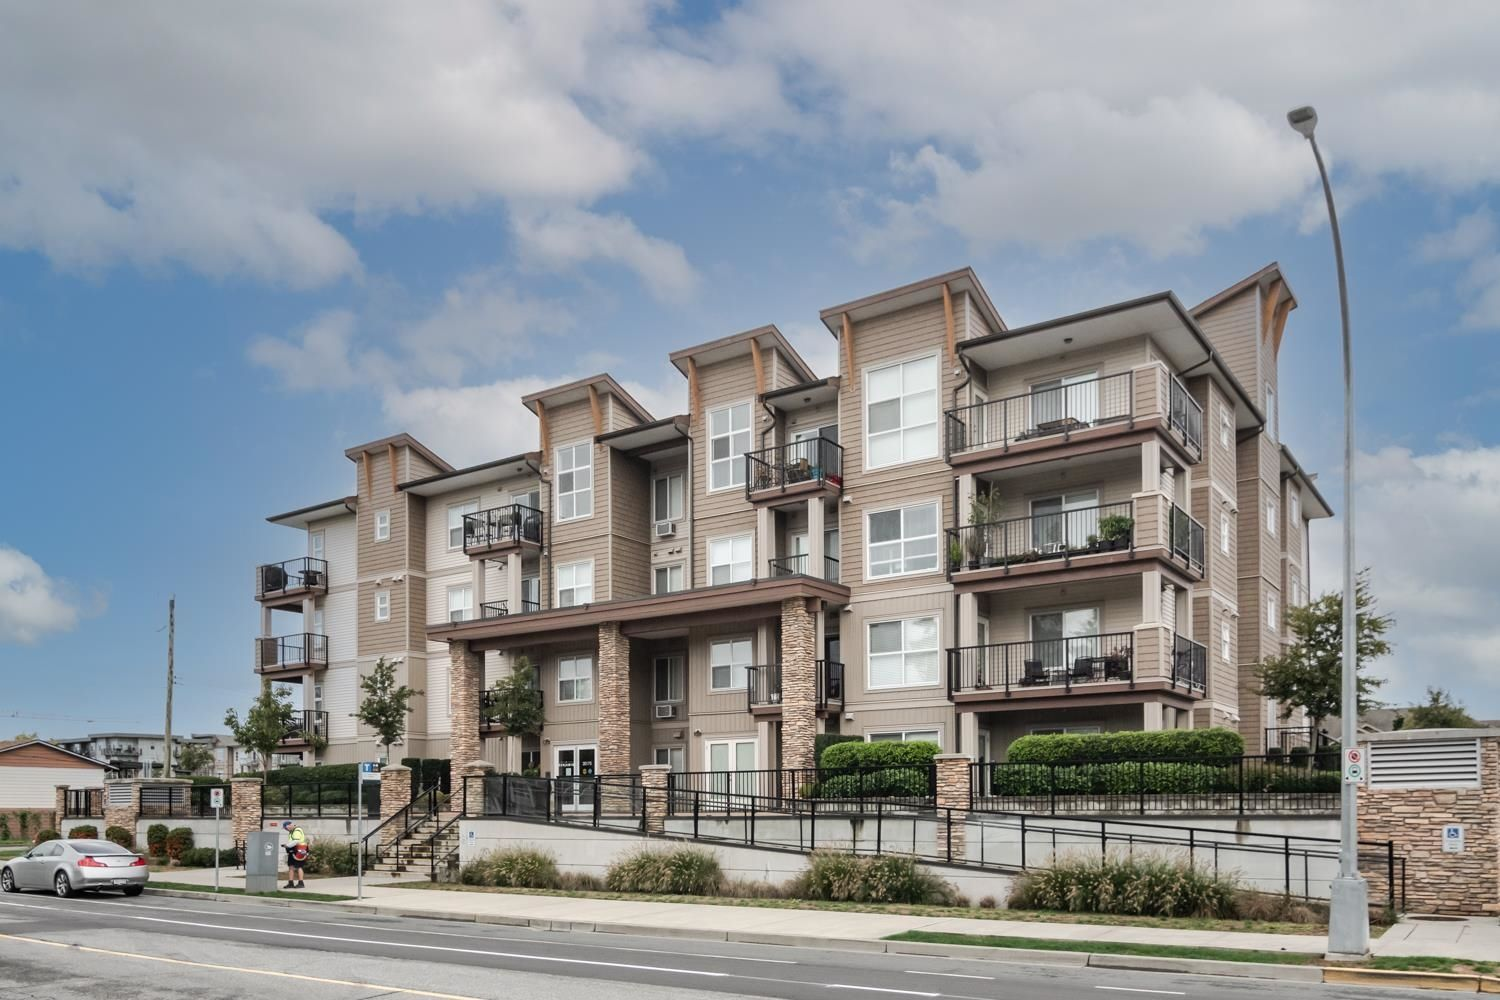 Main Photo: 413 20175 53 Avenue in Langley: Langley City Condo for sale : MLS®# R2621155